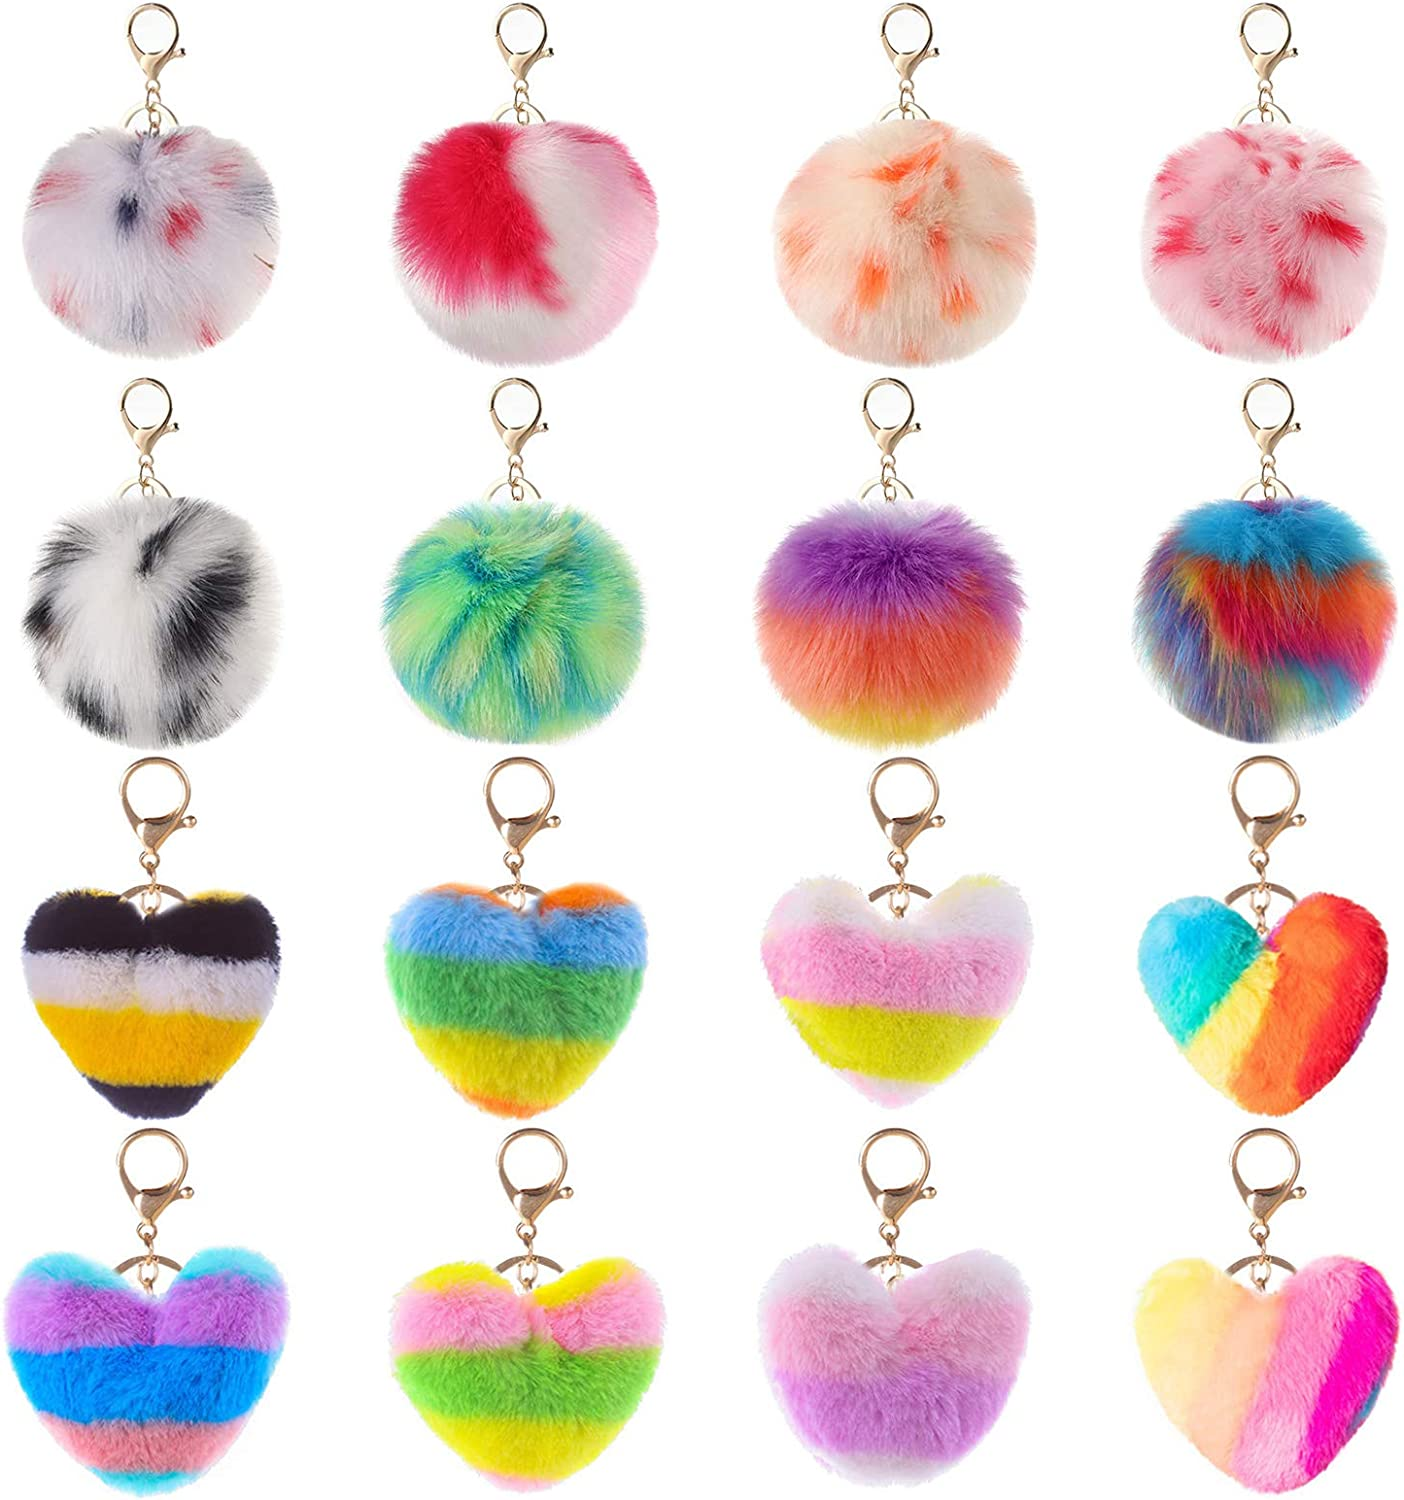 AMCEMIC 16 Pieces Pom Poms Keychains Fluffy Max 65% OFF Ball National products Shap Fur Heart